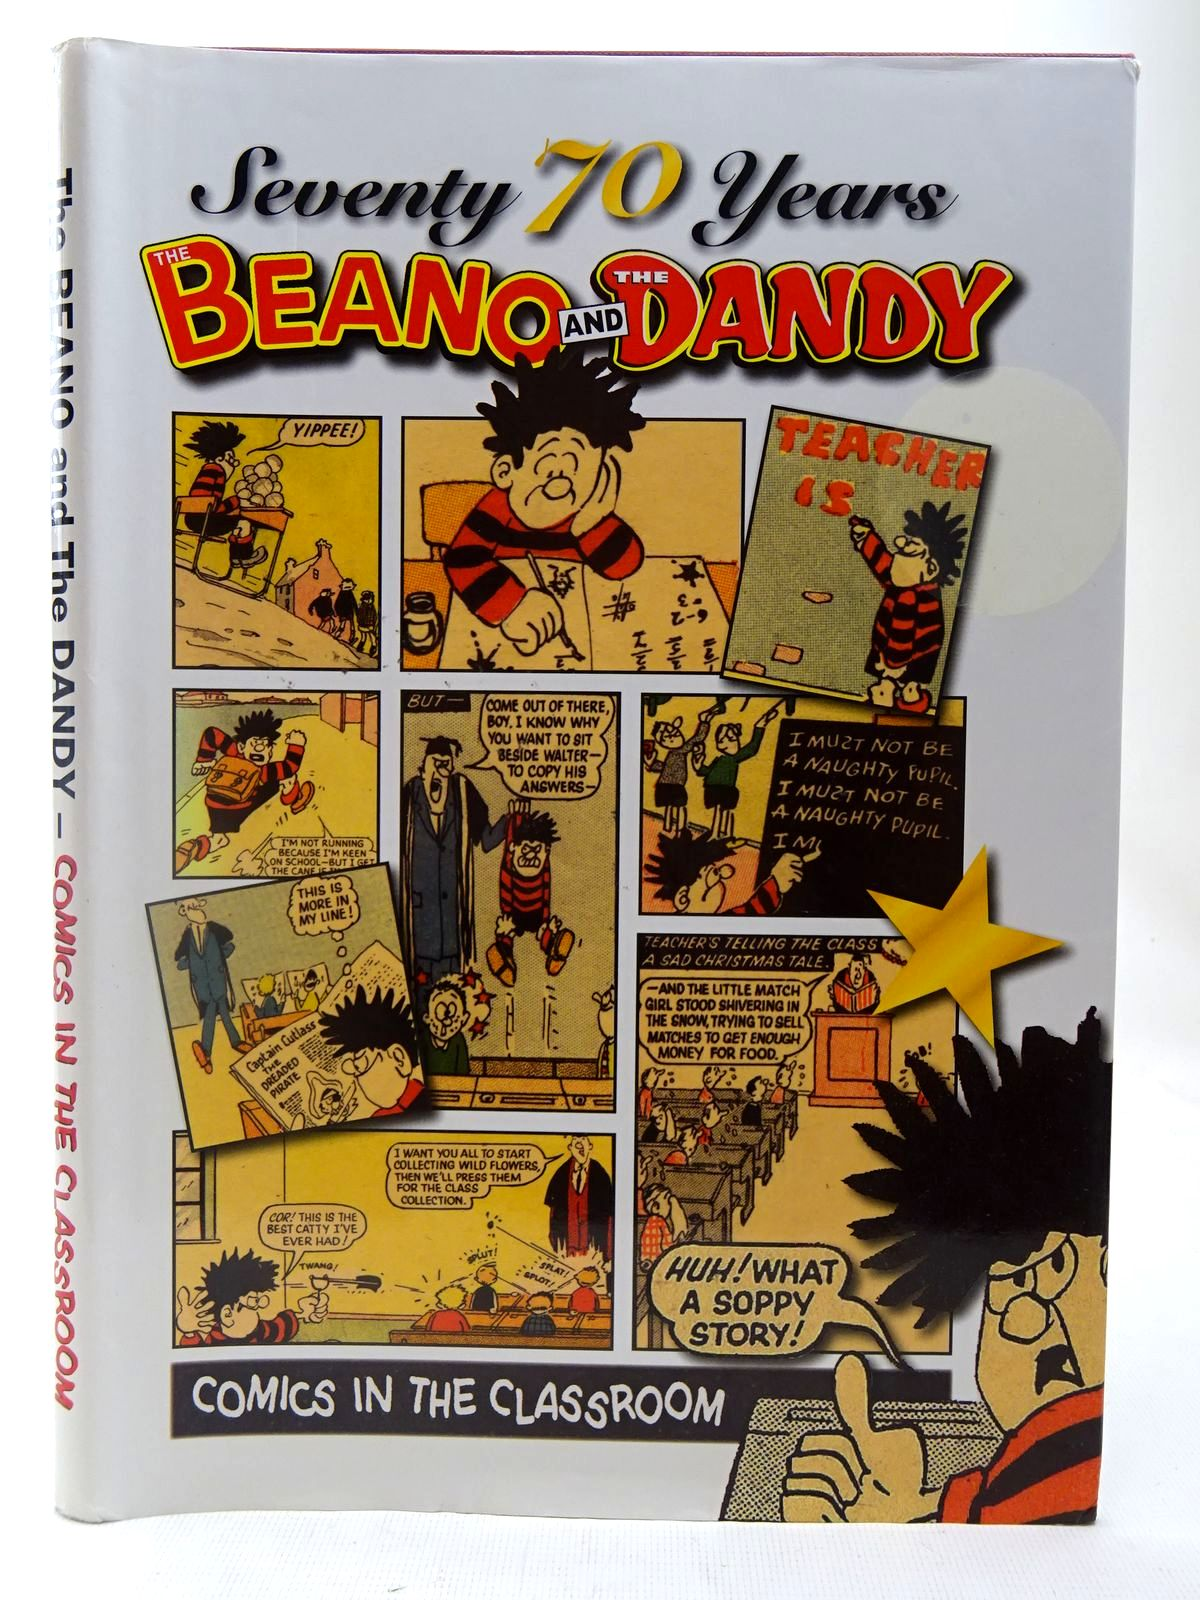 Photo of THE BEANO AND THE DANDY - SEVENTY 70 YEARS - COMICS IN THE CLASSROOM published by D.C. Thomson & Co Ltd. (STOCK CODE: 2127372)  for sale by Stella & Rose's Books